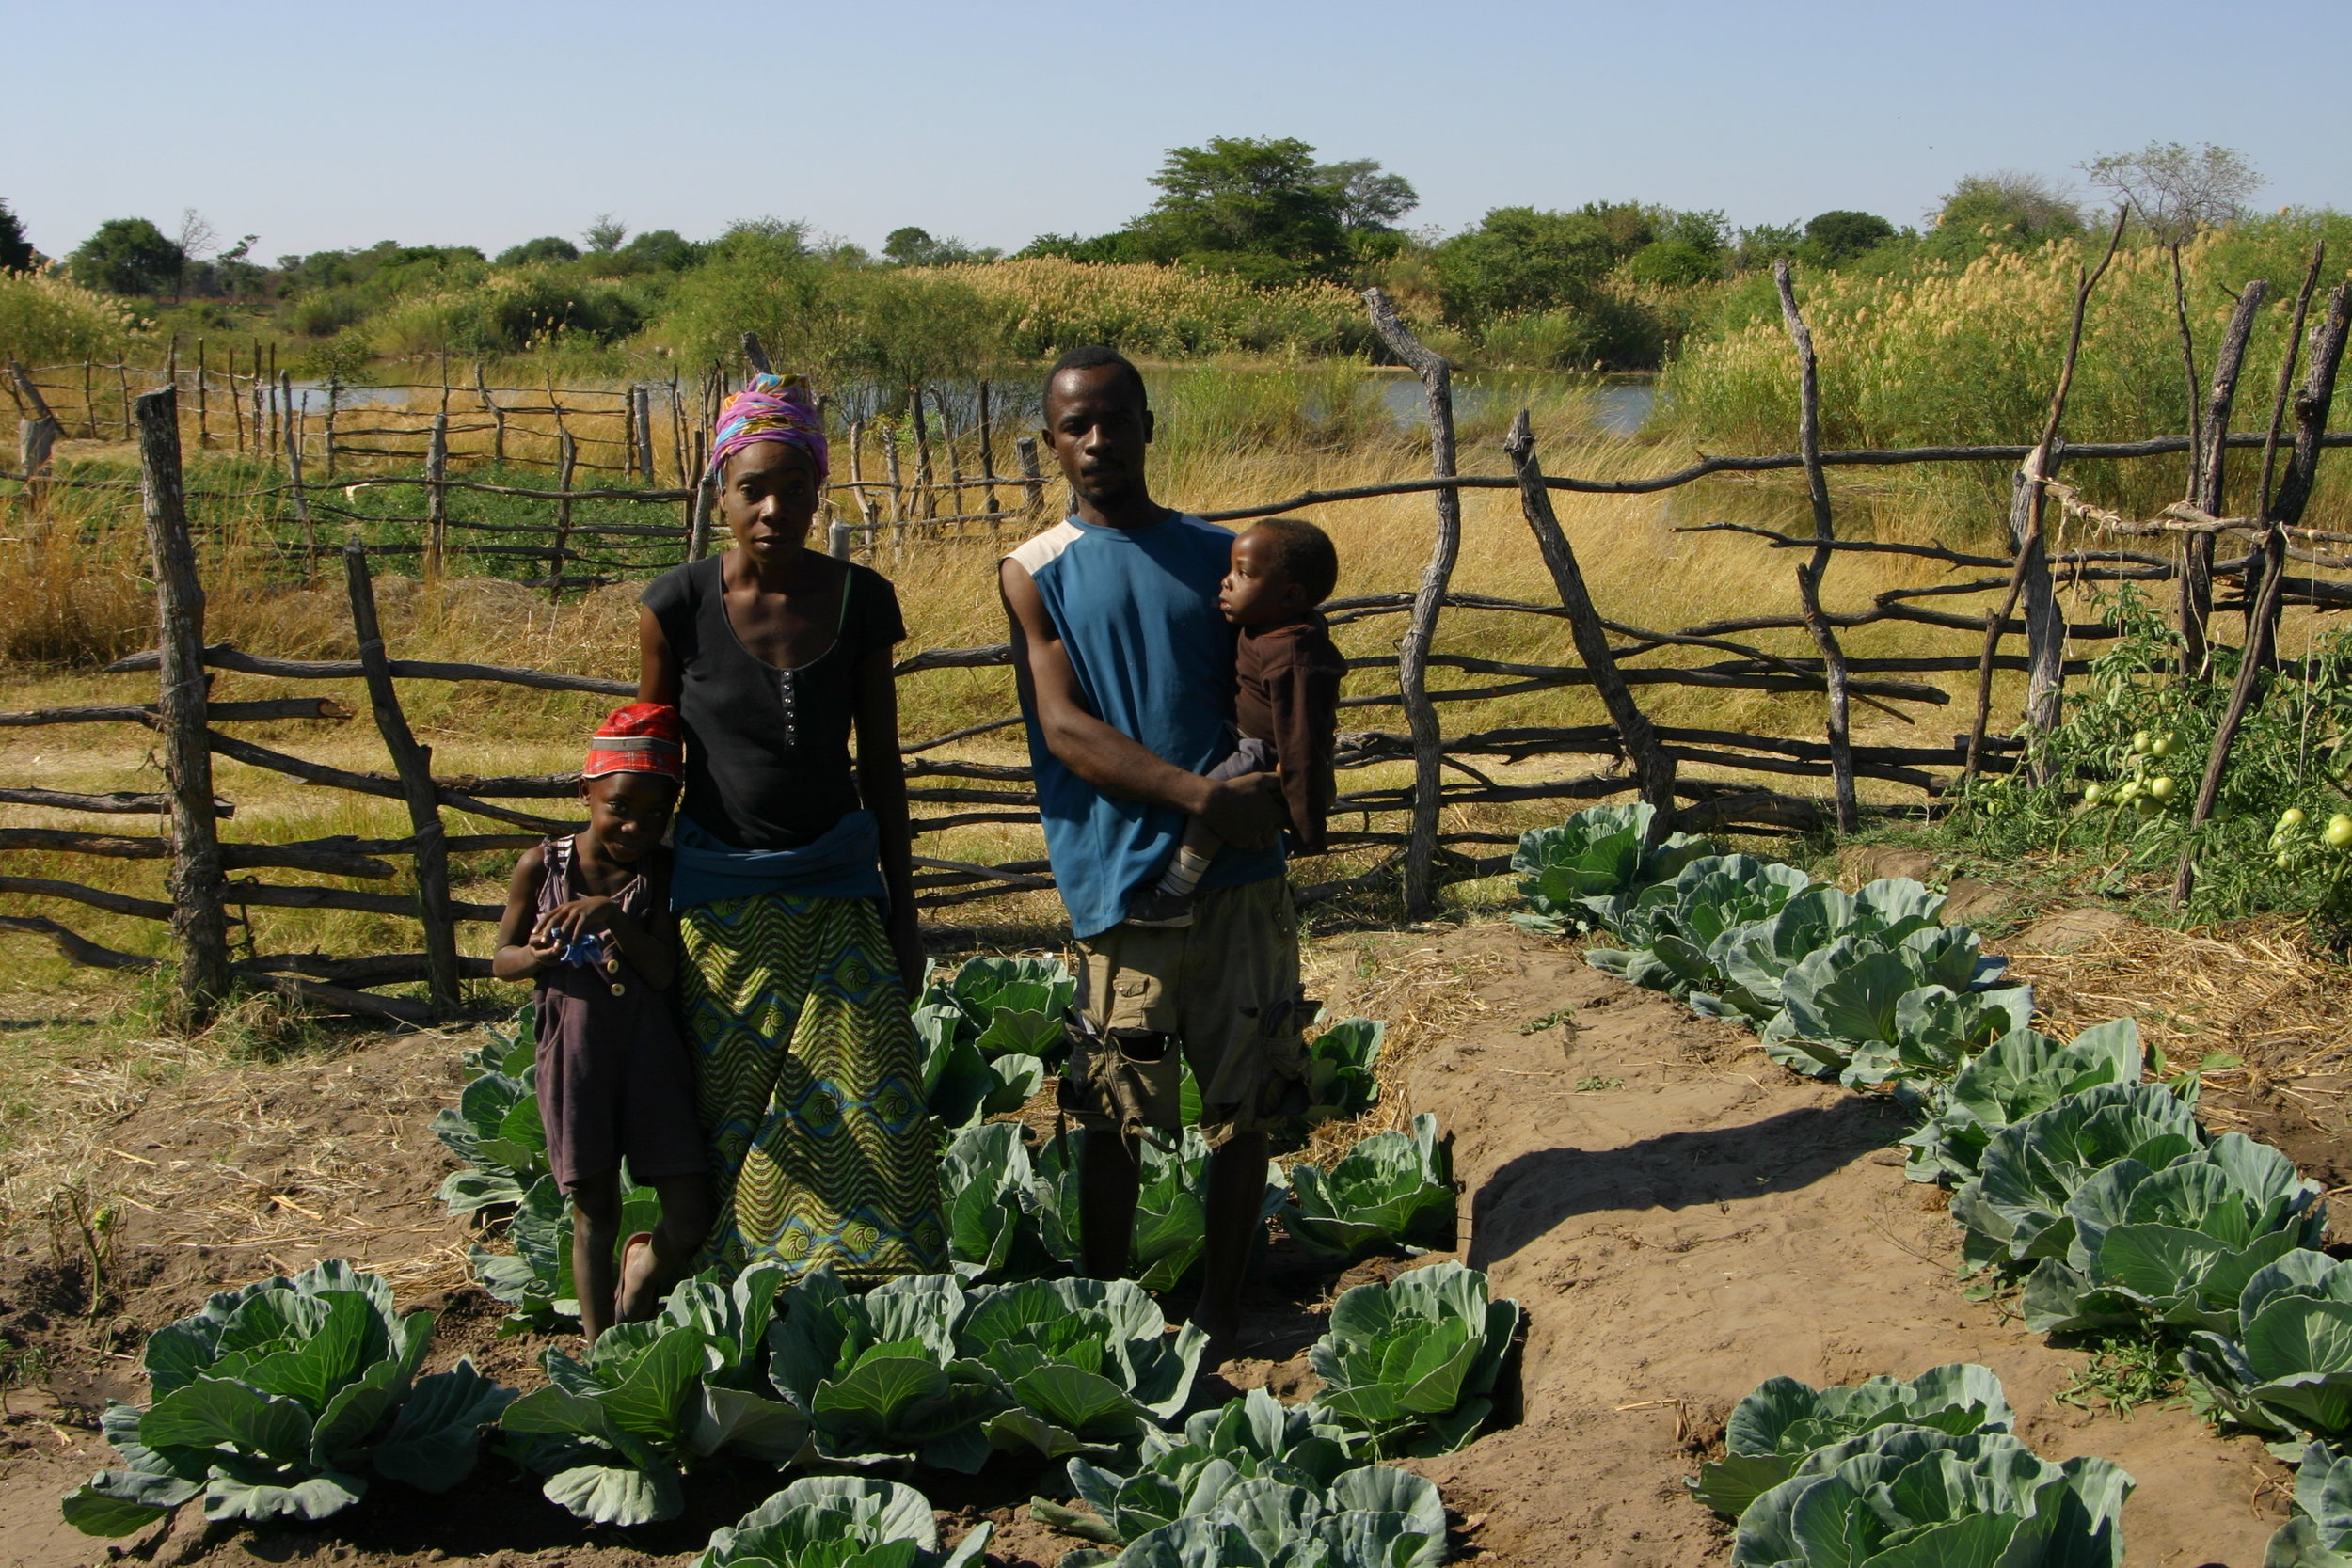 Subsistence agriculture in Zambia  (c) Peace Parks Foundation